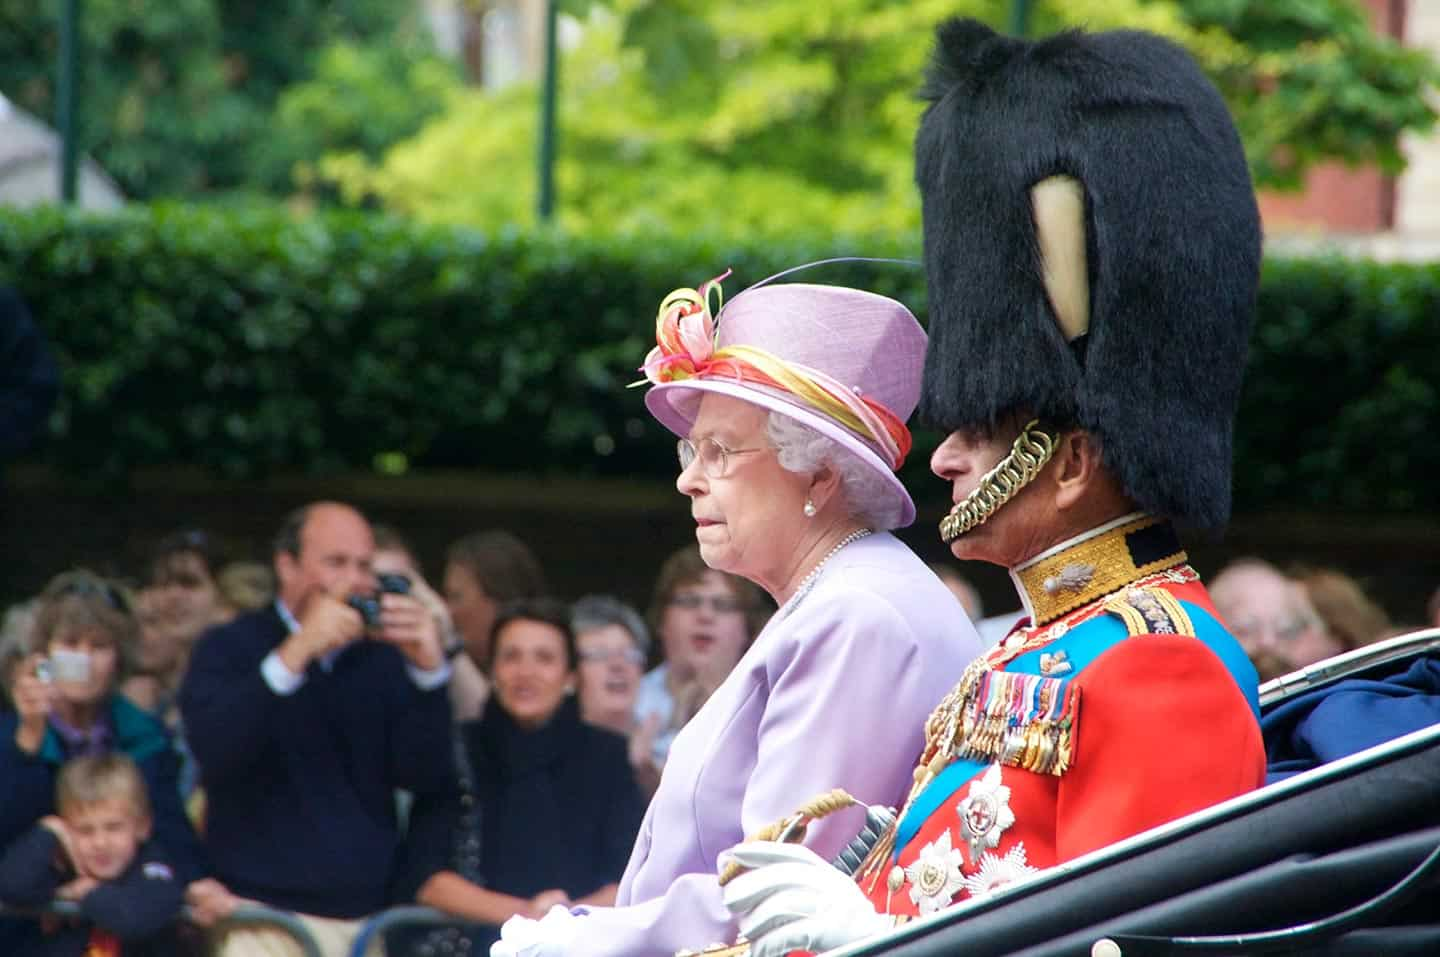 Image of the Queen and Duke of Edinburgh